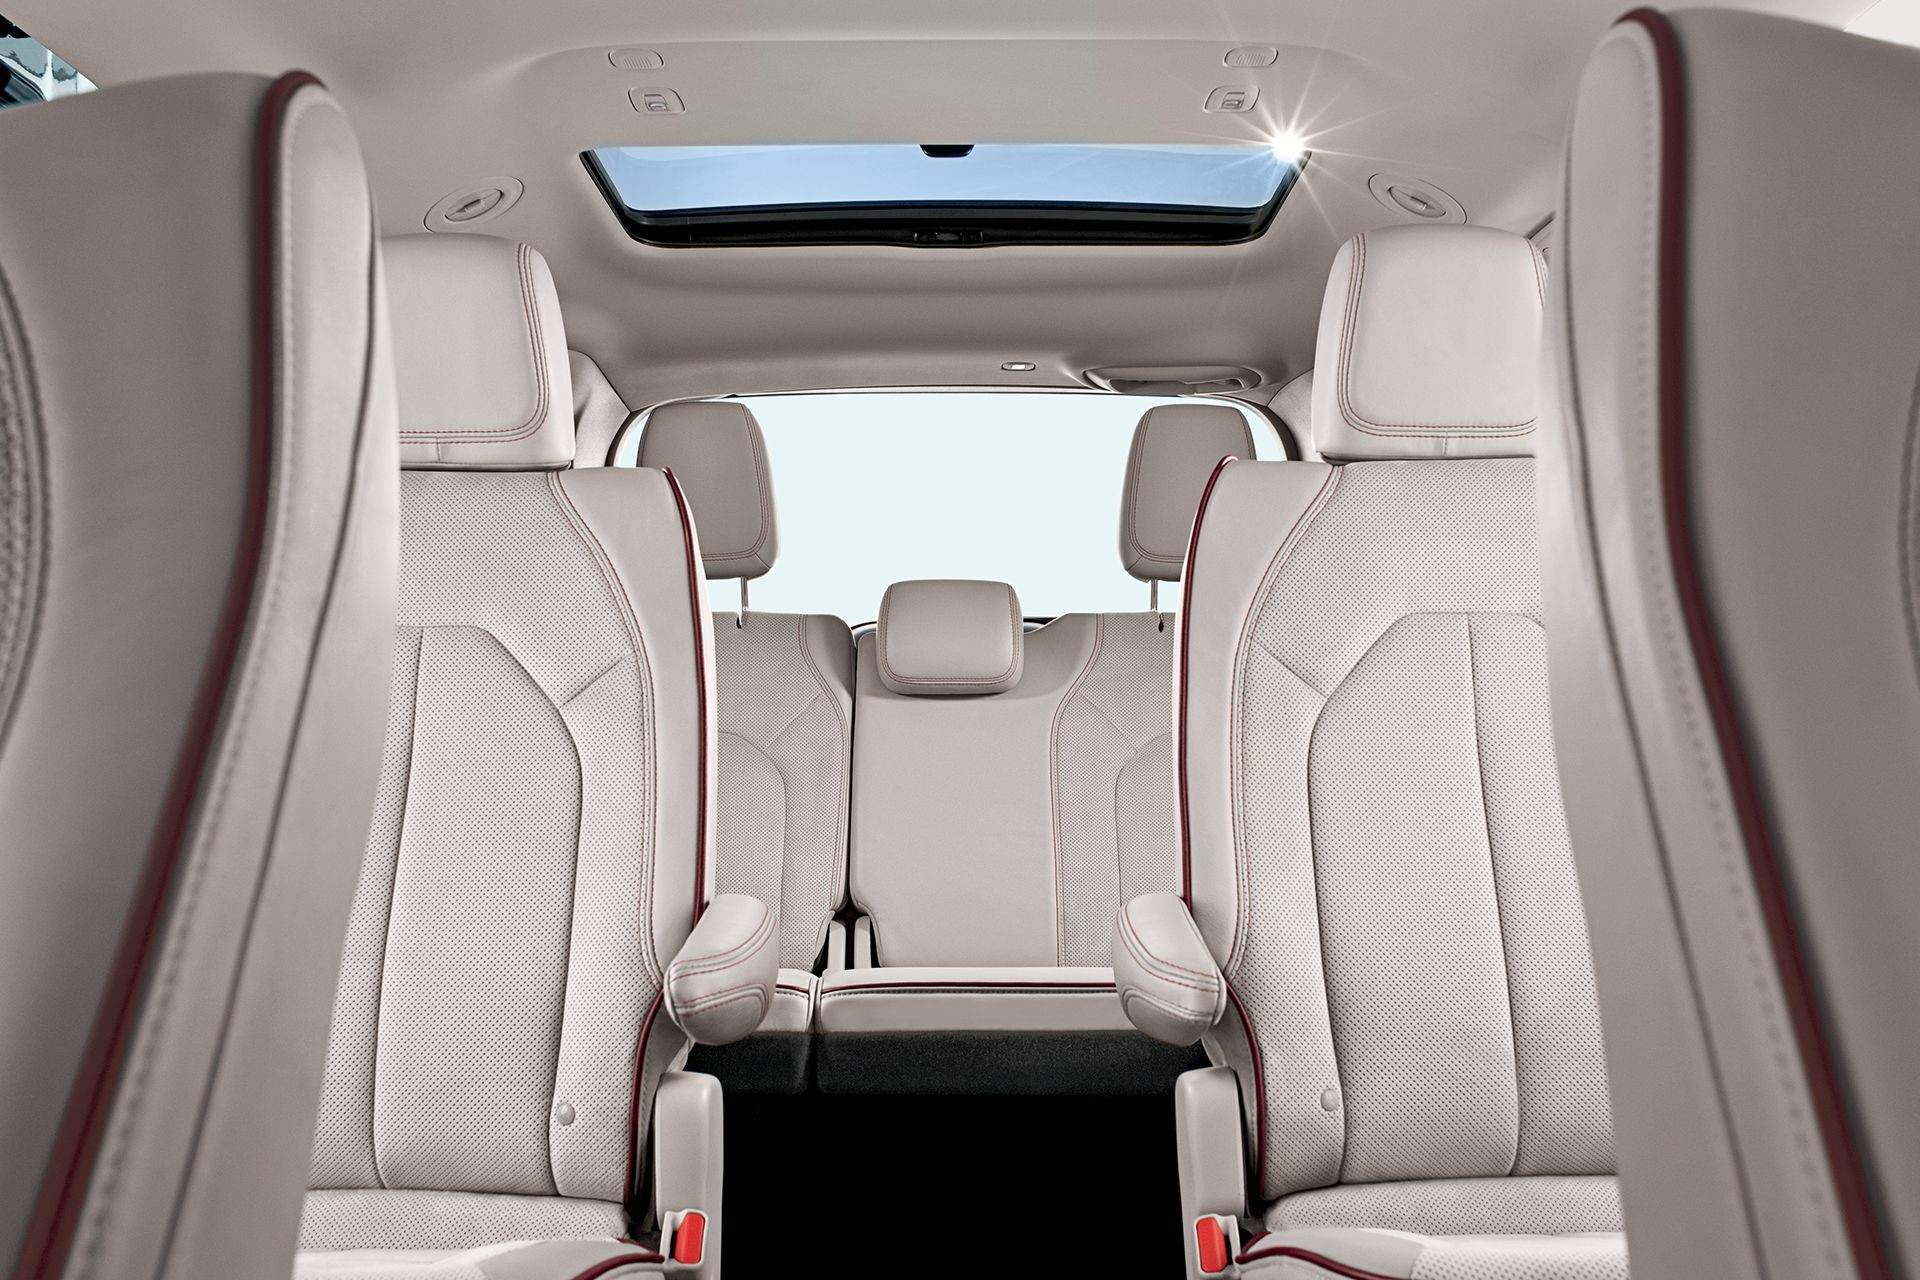 2018-Chrysler-Pacifica-Interior-Seating-Seat-Rear-Sunroof